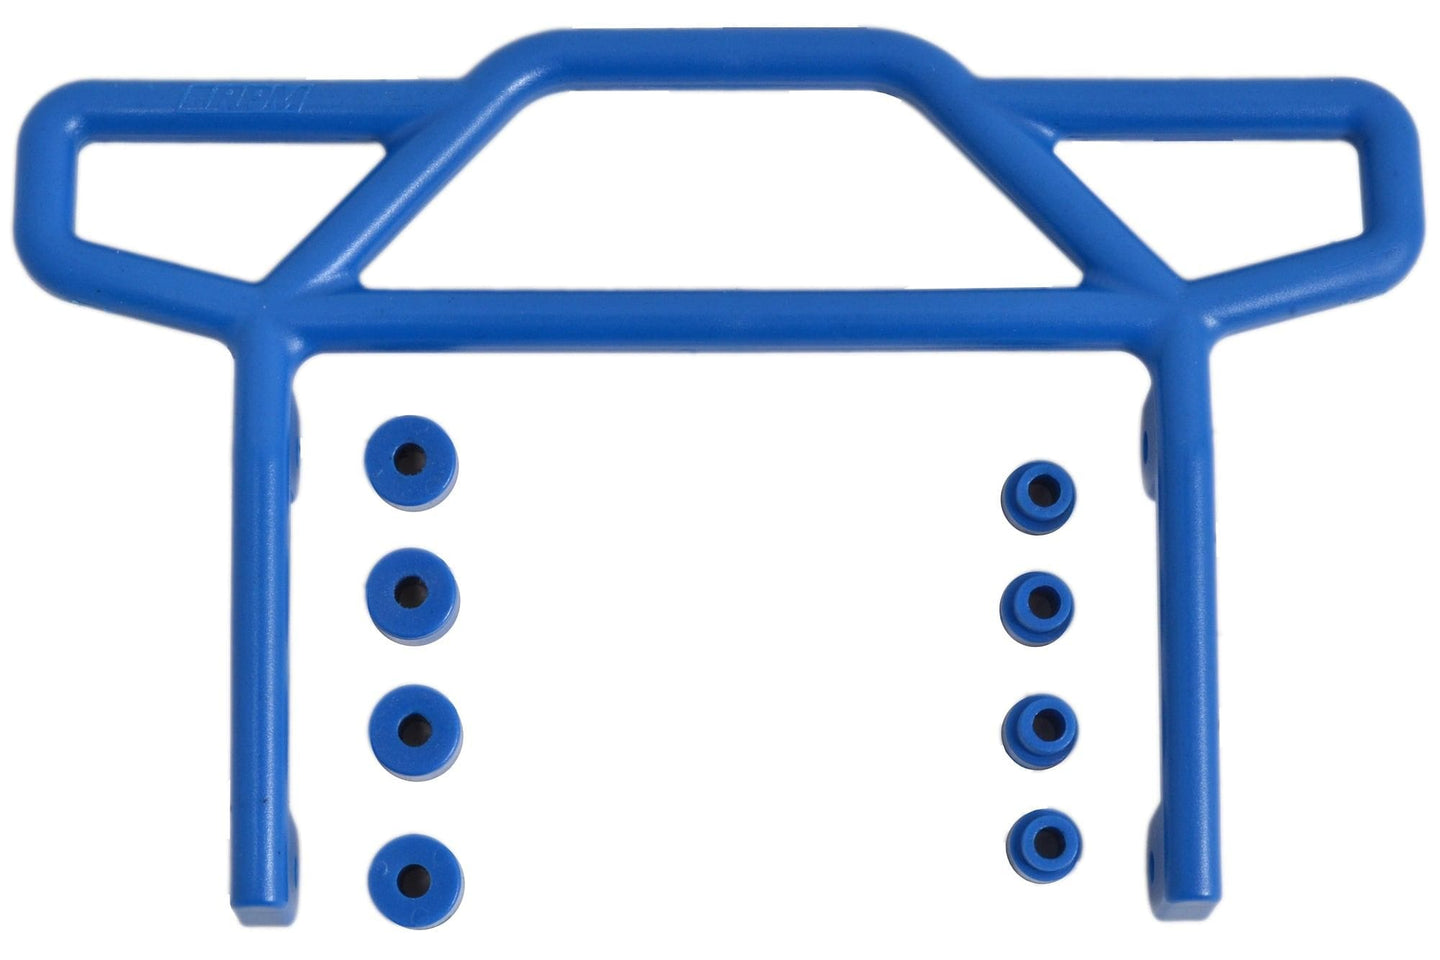 RPM 70815   Rear Bumper, Blue, for Traxxas Electric Rustler